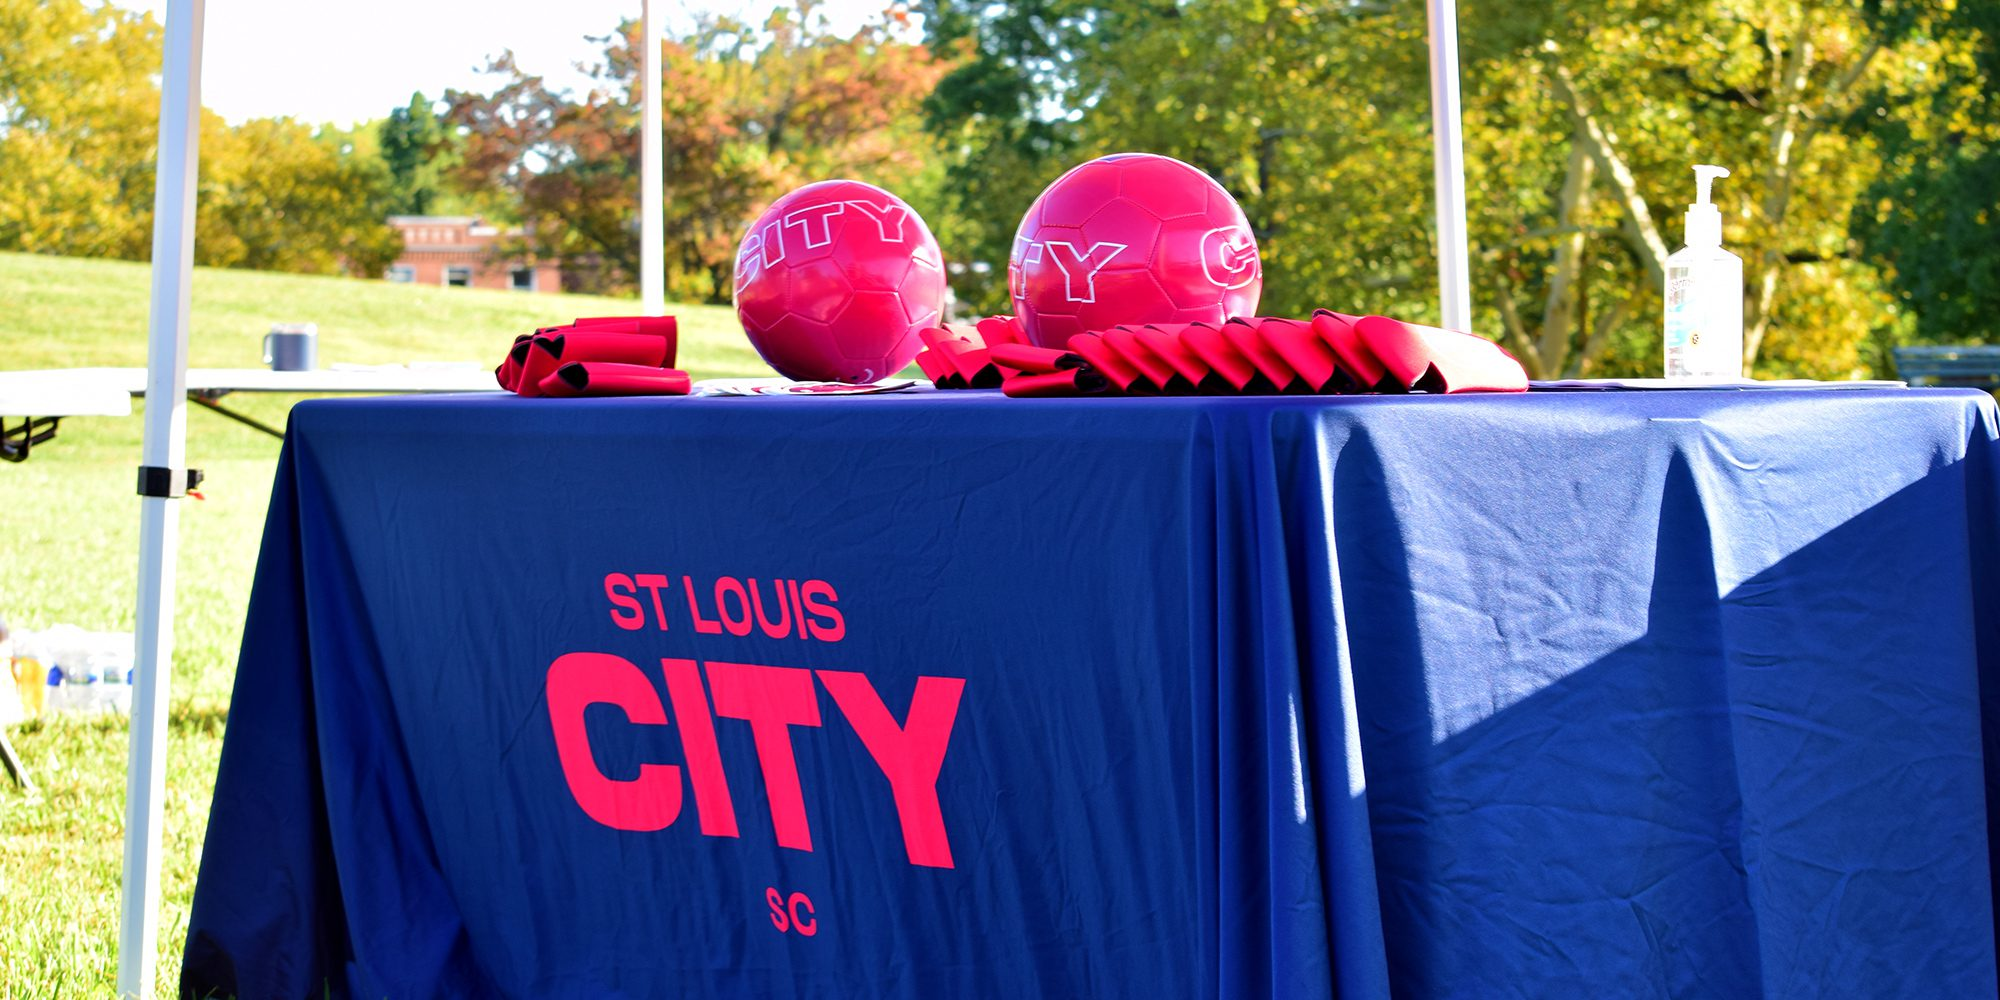 St. Louis CITY SC soccer balls and swag at the futsal court in Marquette Park in Dutchtown, St. Louis, MO.